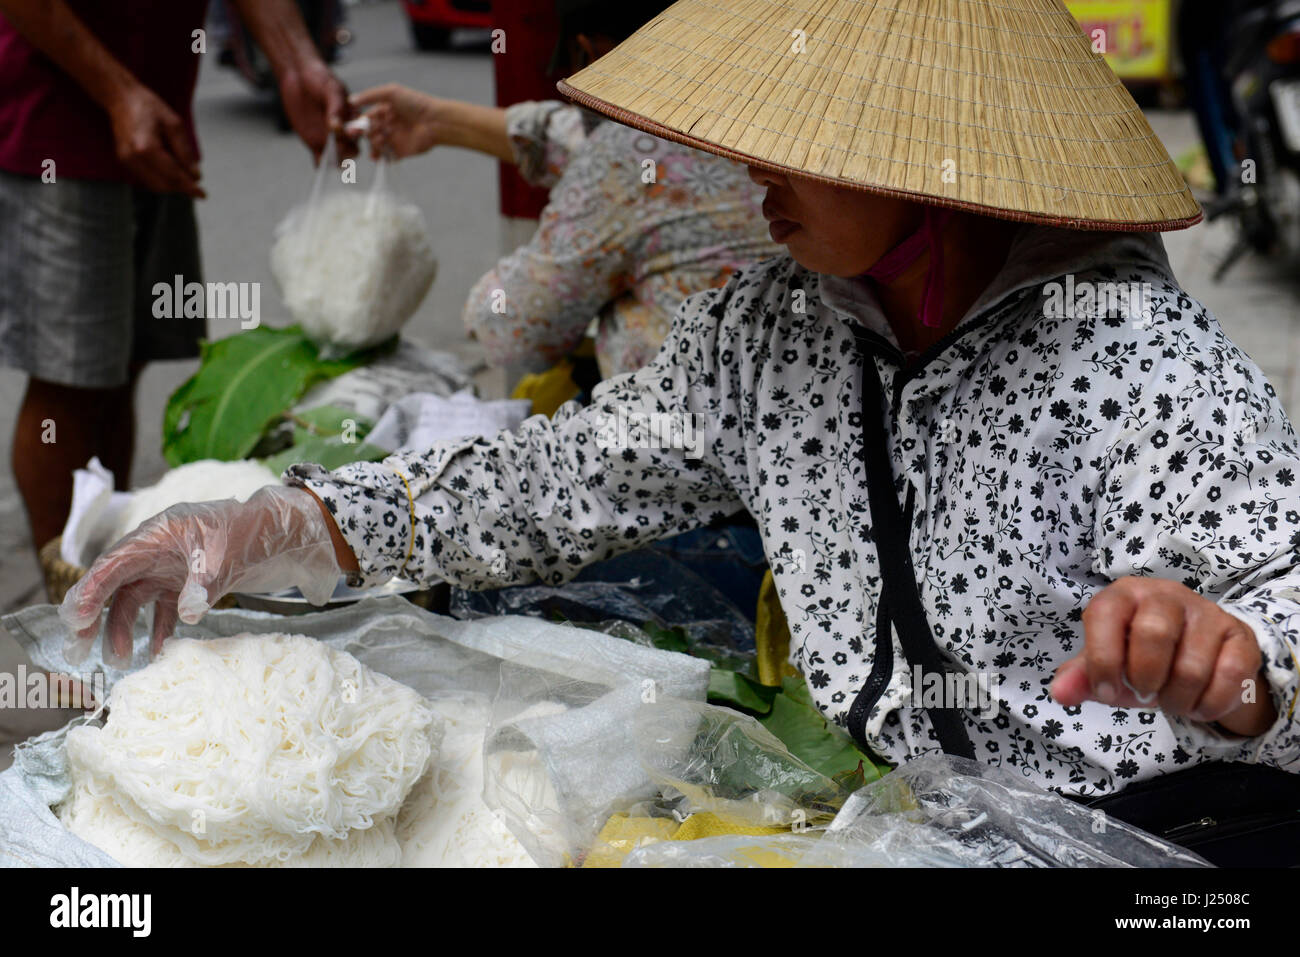 A Vietnamese woman selling fresh rice noodles. - Stock Image